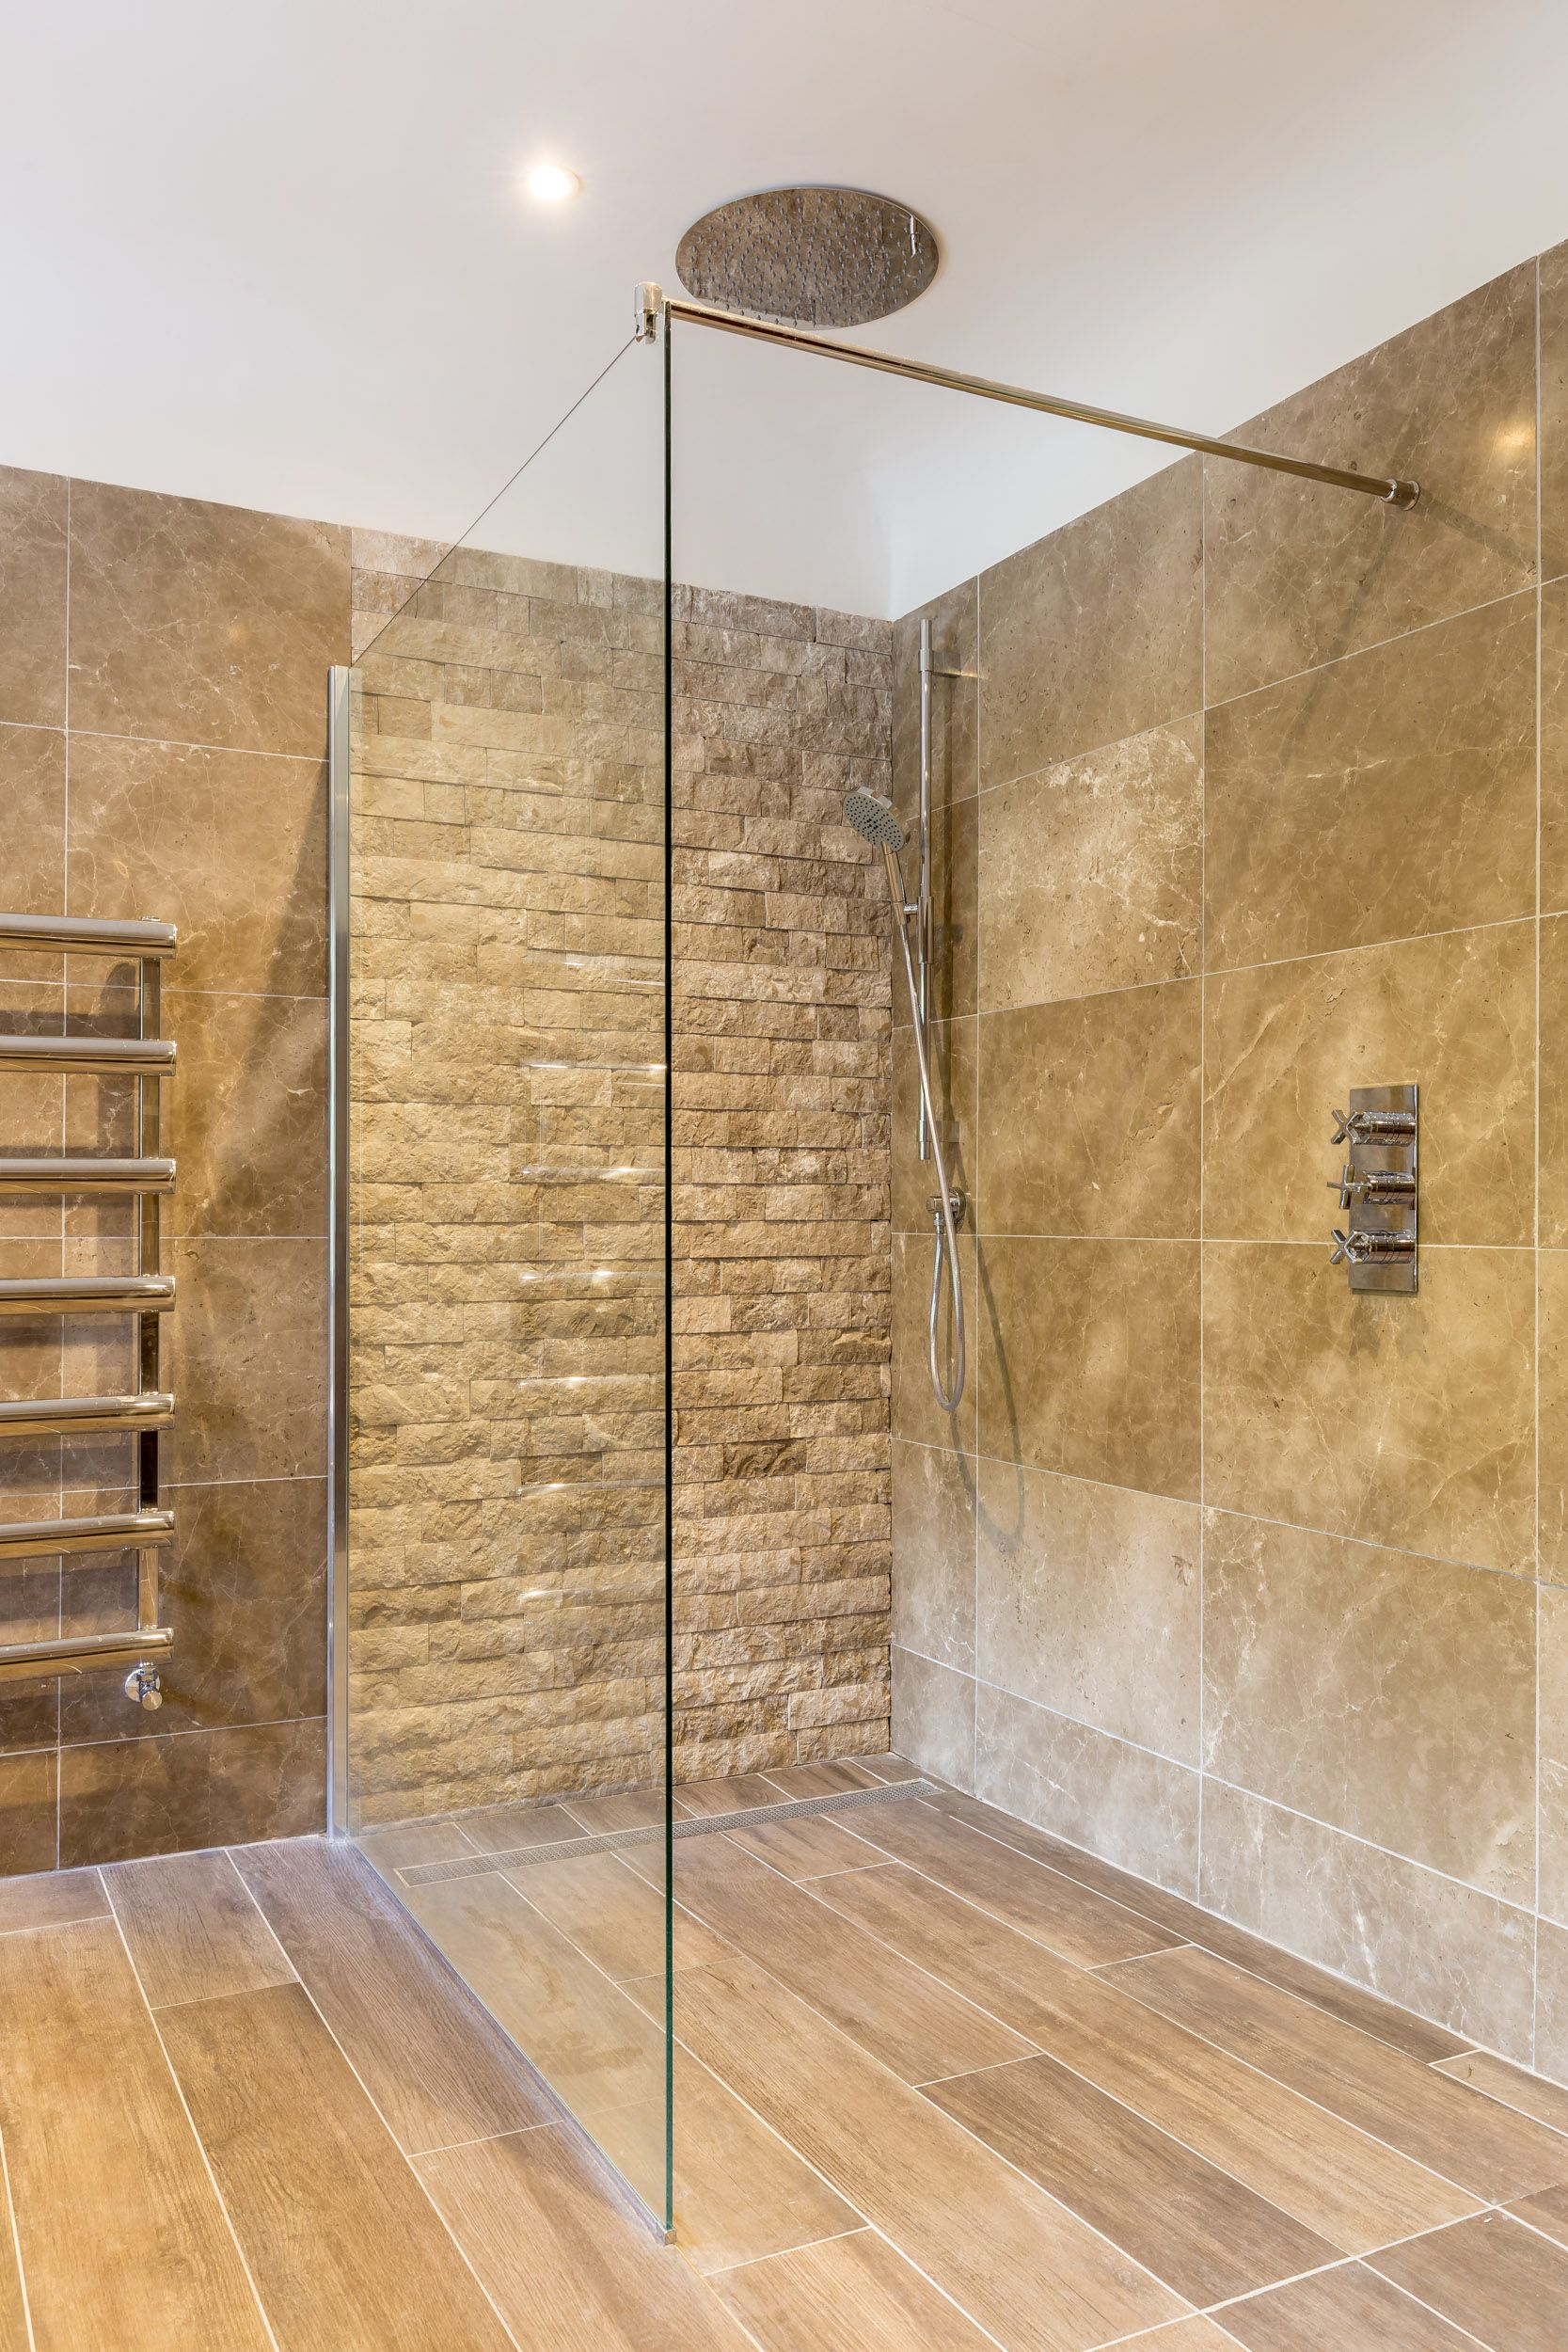 Picture Gallery Website Feature contemporary stone clad shower wall rustic surface texture modern bathroom renovation